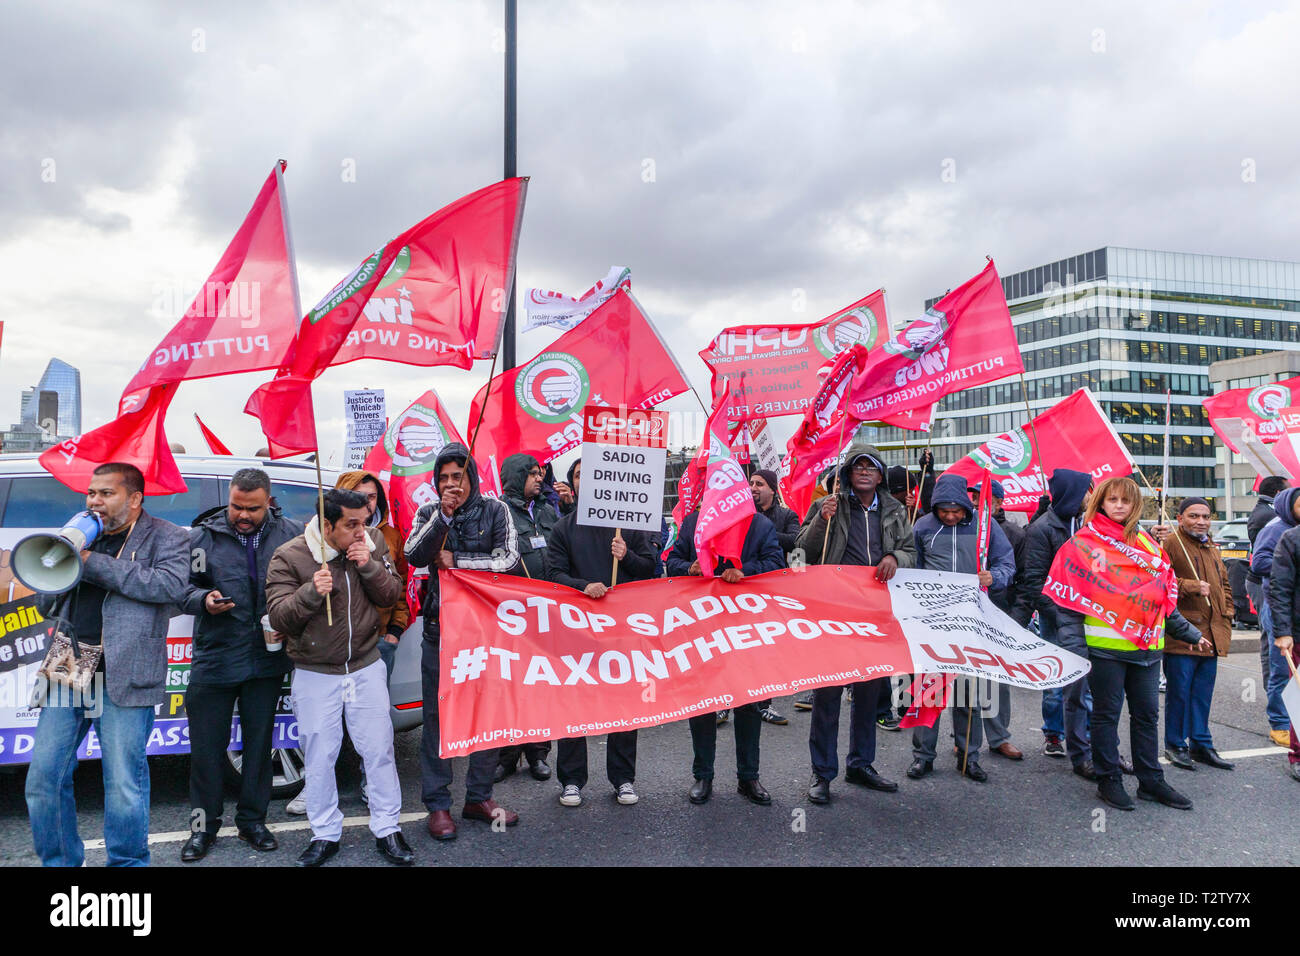 London, UK, 04th April 2019. Minicab drivers block the road on London Bridge protesting against the congestion change on private hire minicabs.  The demonstrators hold and wave flags and placards of UPHD (United Prive Hire Drivers) and IWGB (Independent Workers Union of Great Britain). Credit: Graham Prentice/Alamy Live News Stock Photo